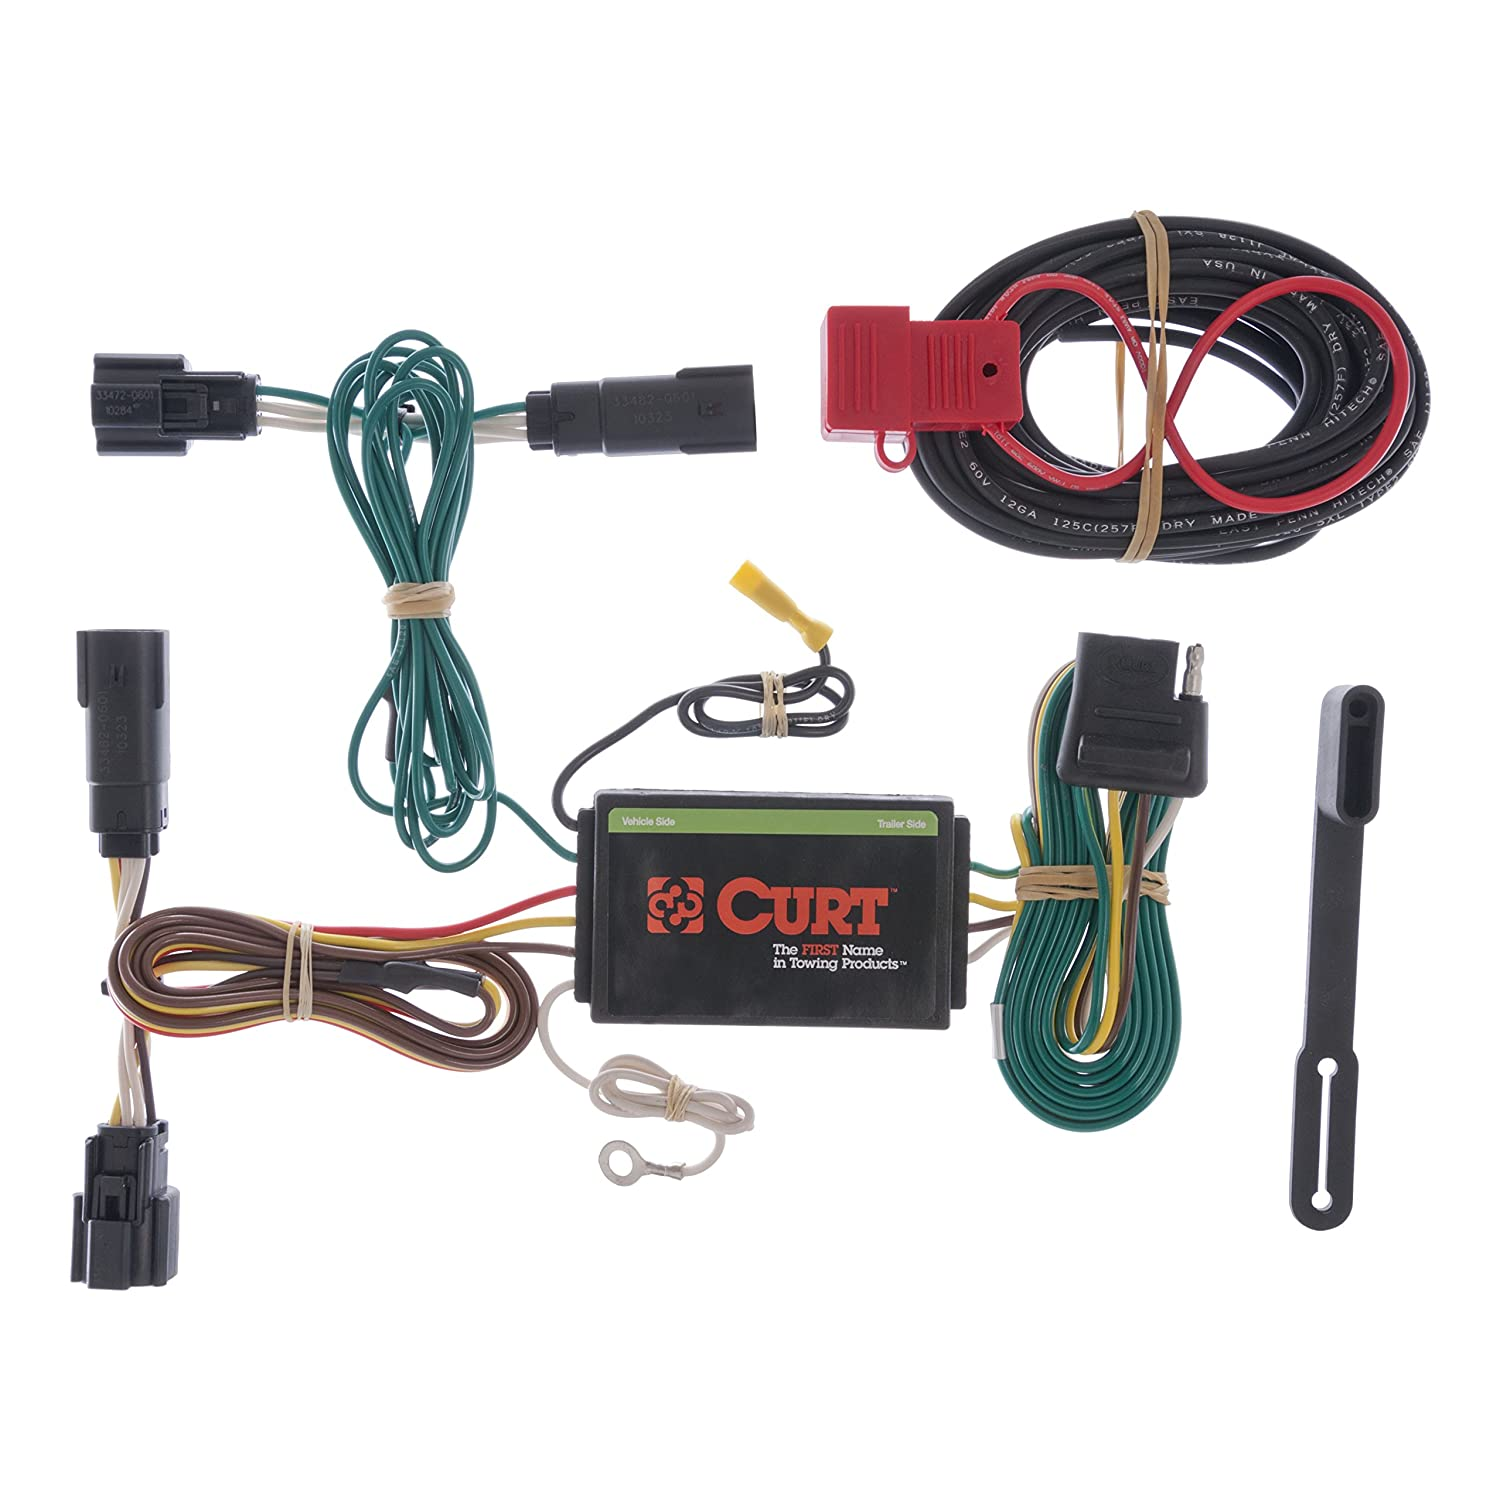 81ohhw2GXXL._SL1500_ amazon com curt 56120 custom wiring harness automotive custom wiring harness at gsmx.co